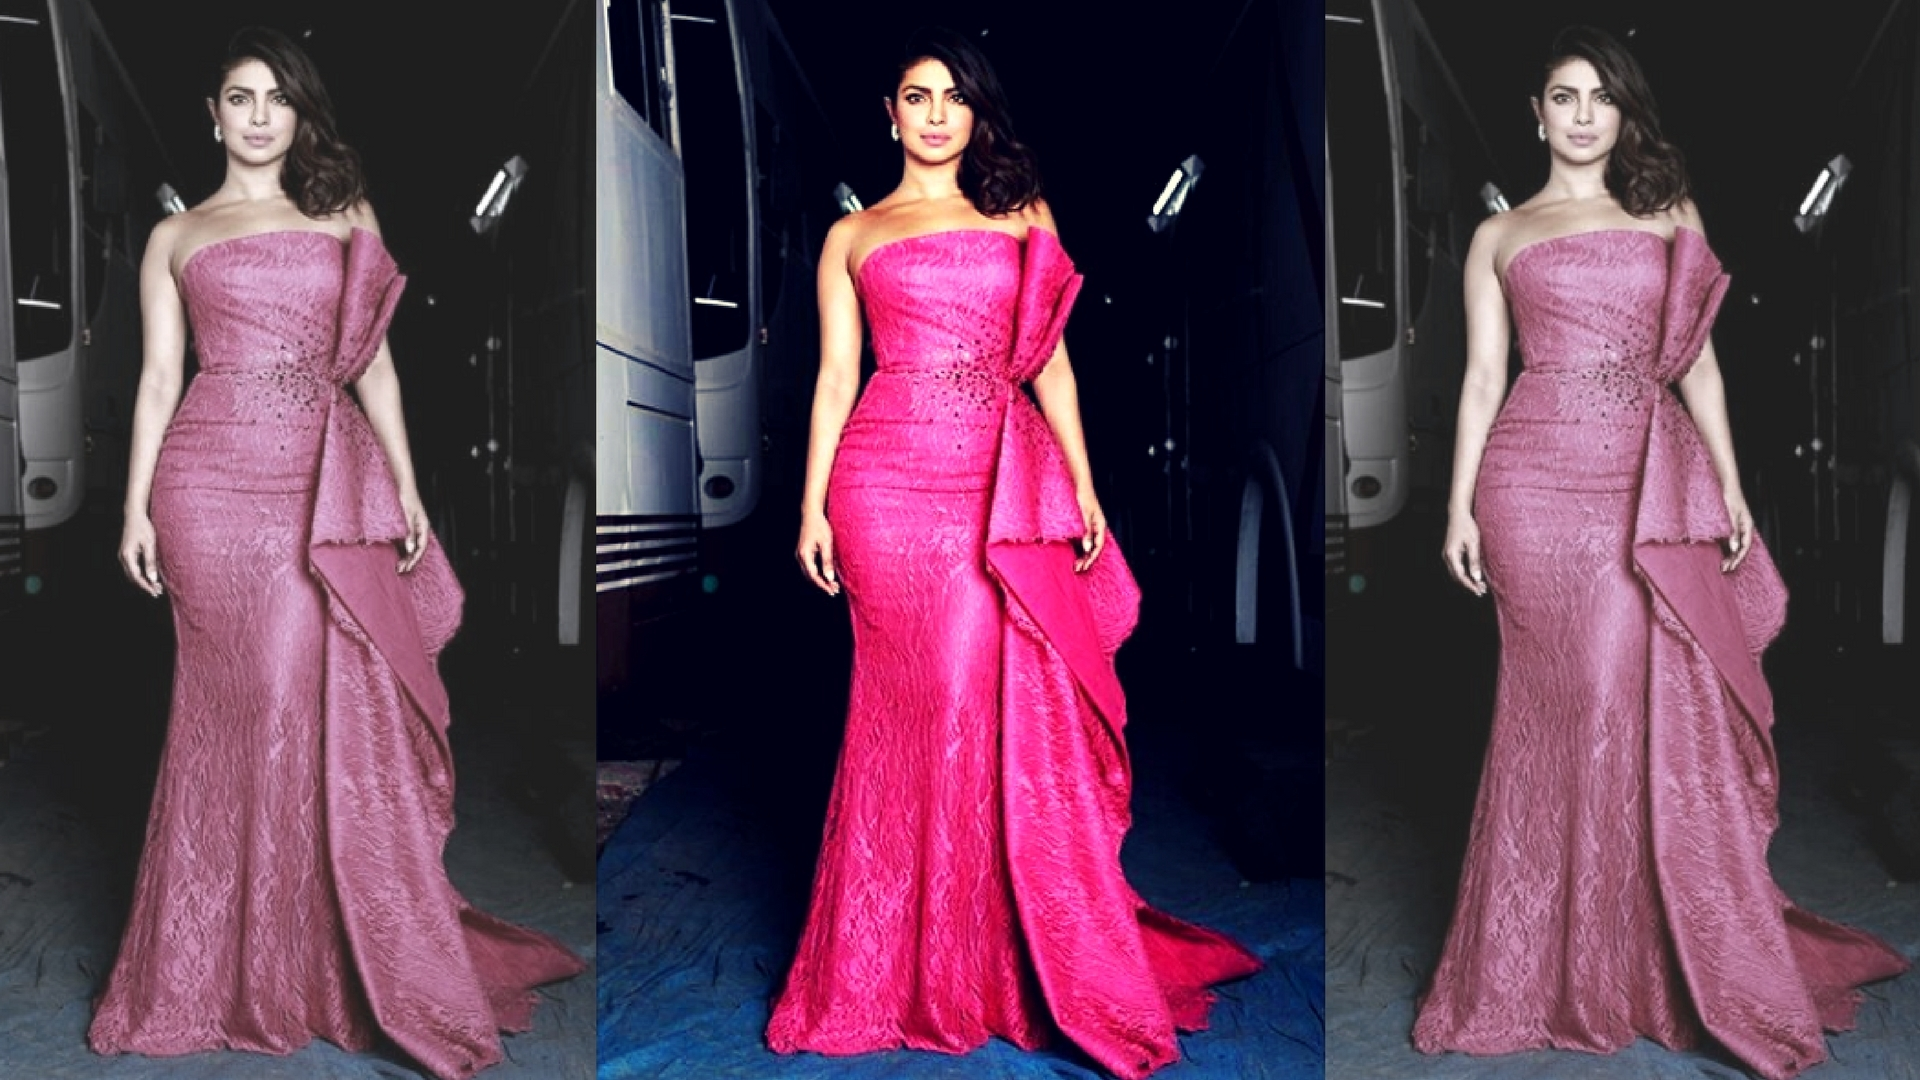 Women Are Judged For Being Ambitious Priyanka Chopra